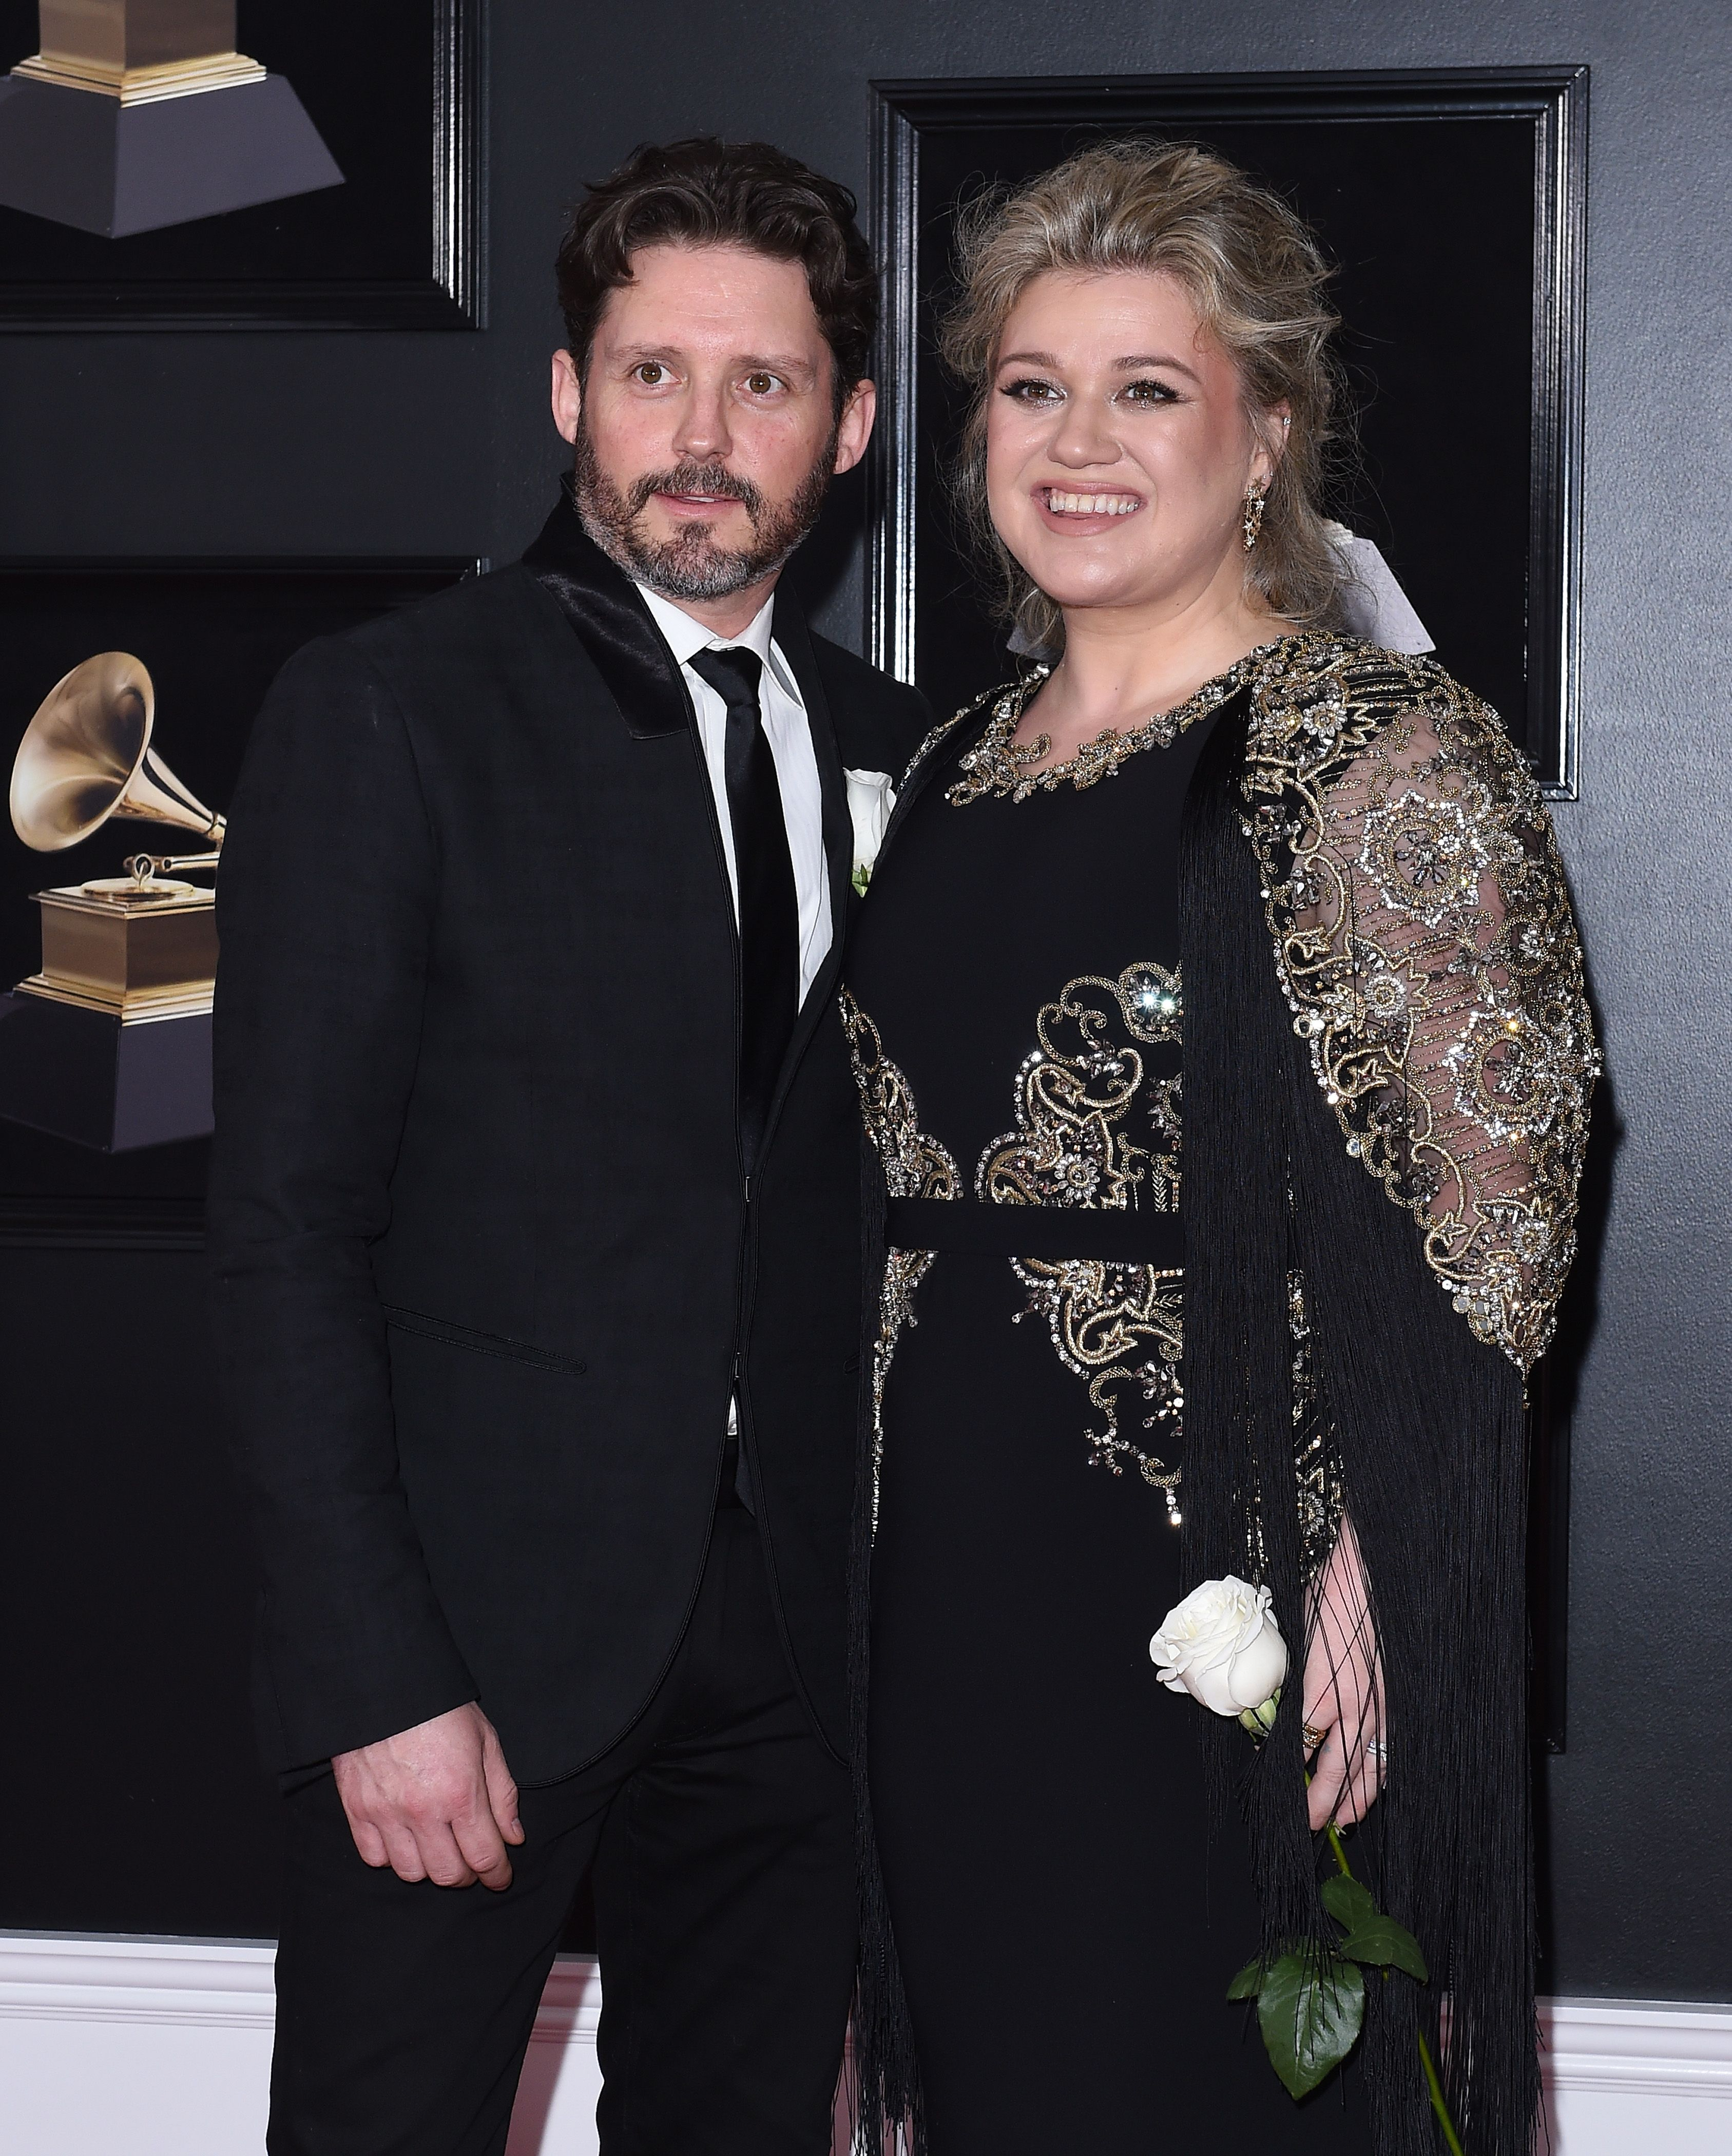 Kelly Clarkson and Brandon Blackstock at the 60th Annual GRAMMY Awards at Madison Square Garden on January 28, 2018 | Photo: Getty Images